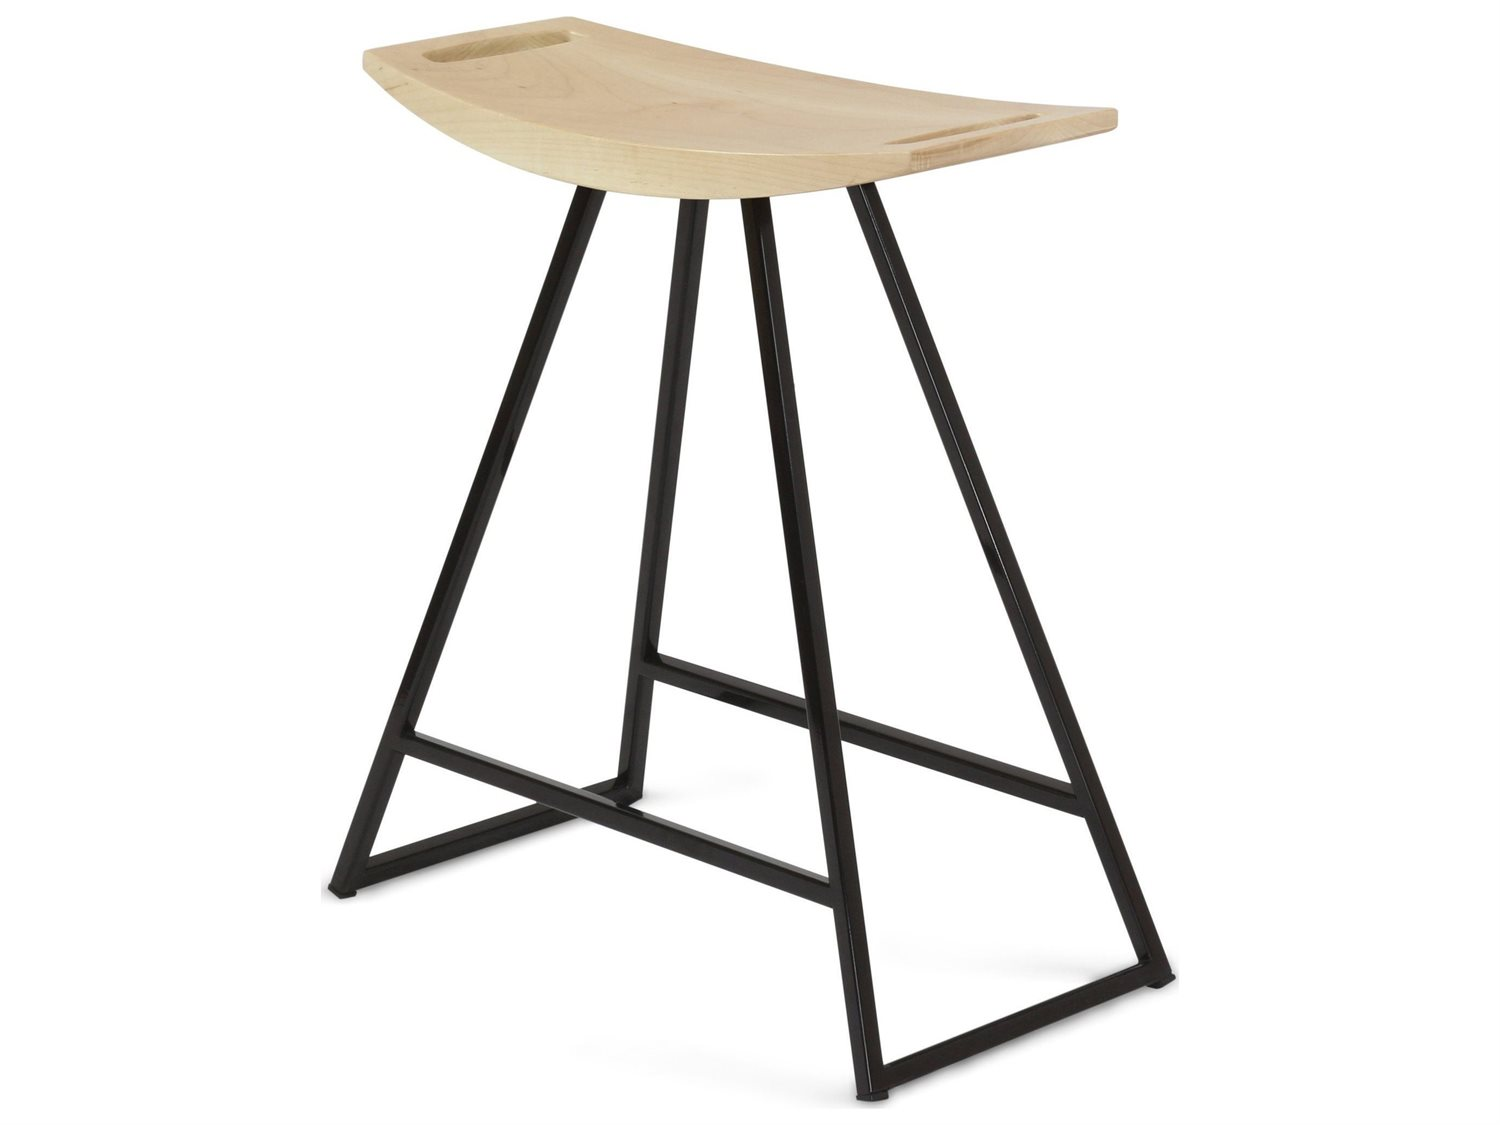 Astounding Tronk Design Robert Maple Black Side Counter Height Stool Bralicious Painted Fabric Chair Ideas Braliciousco